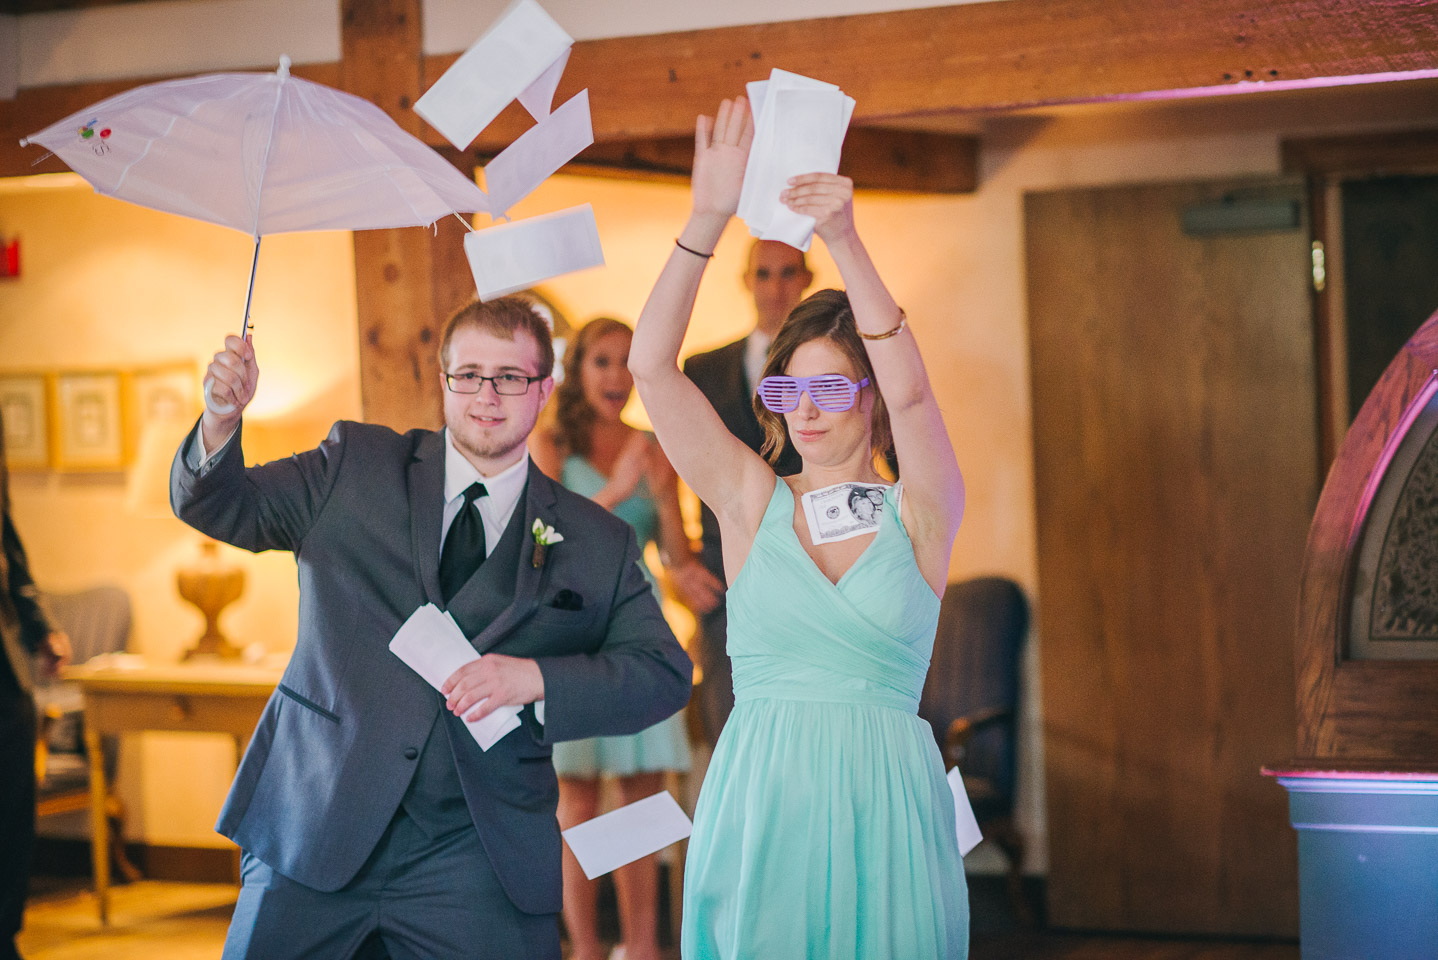 NH Wedding Photography: wedding party introductions